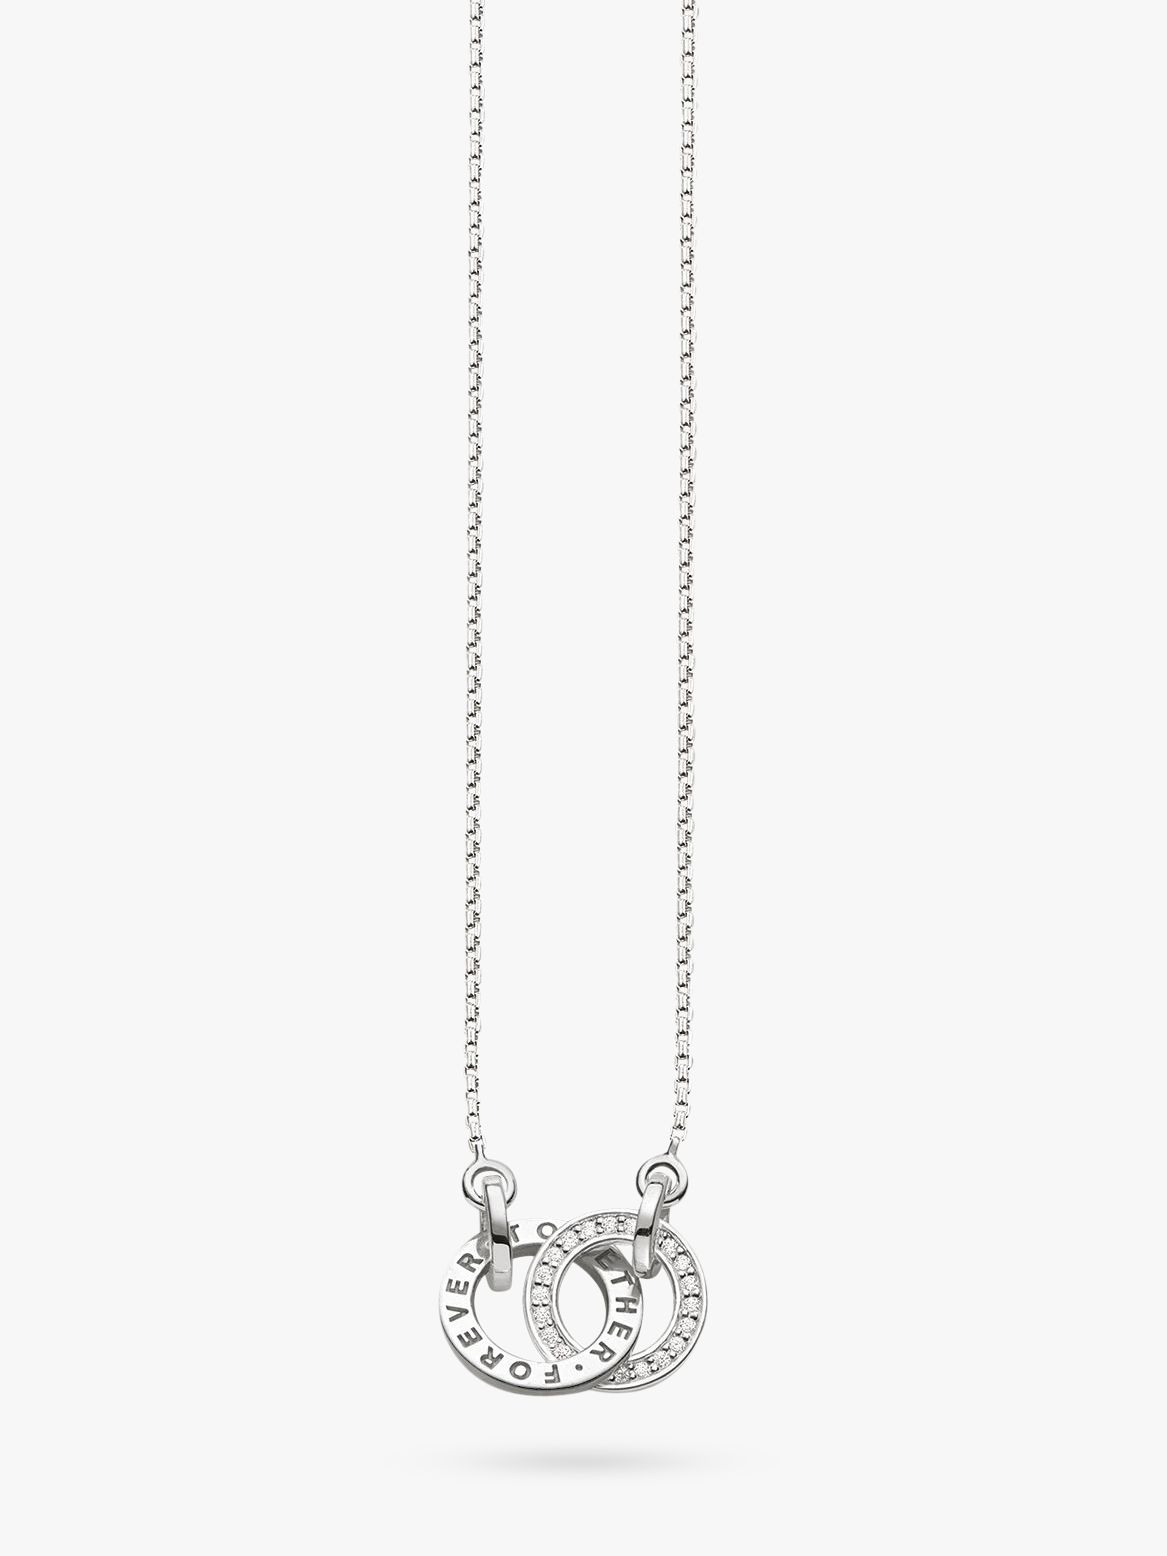 Thomas Sabo THOMAS SABO Glam & Soul Together Forever Necklace, Silver